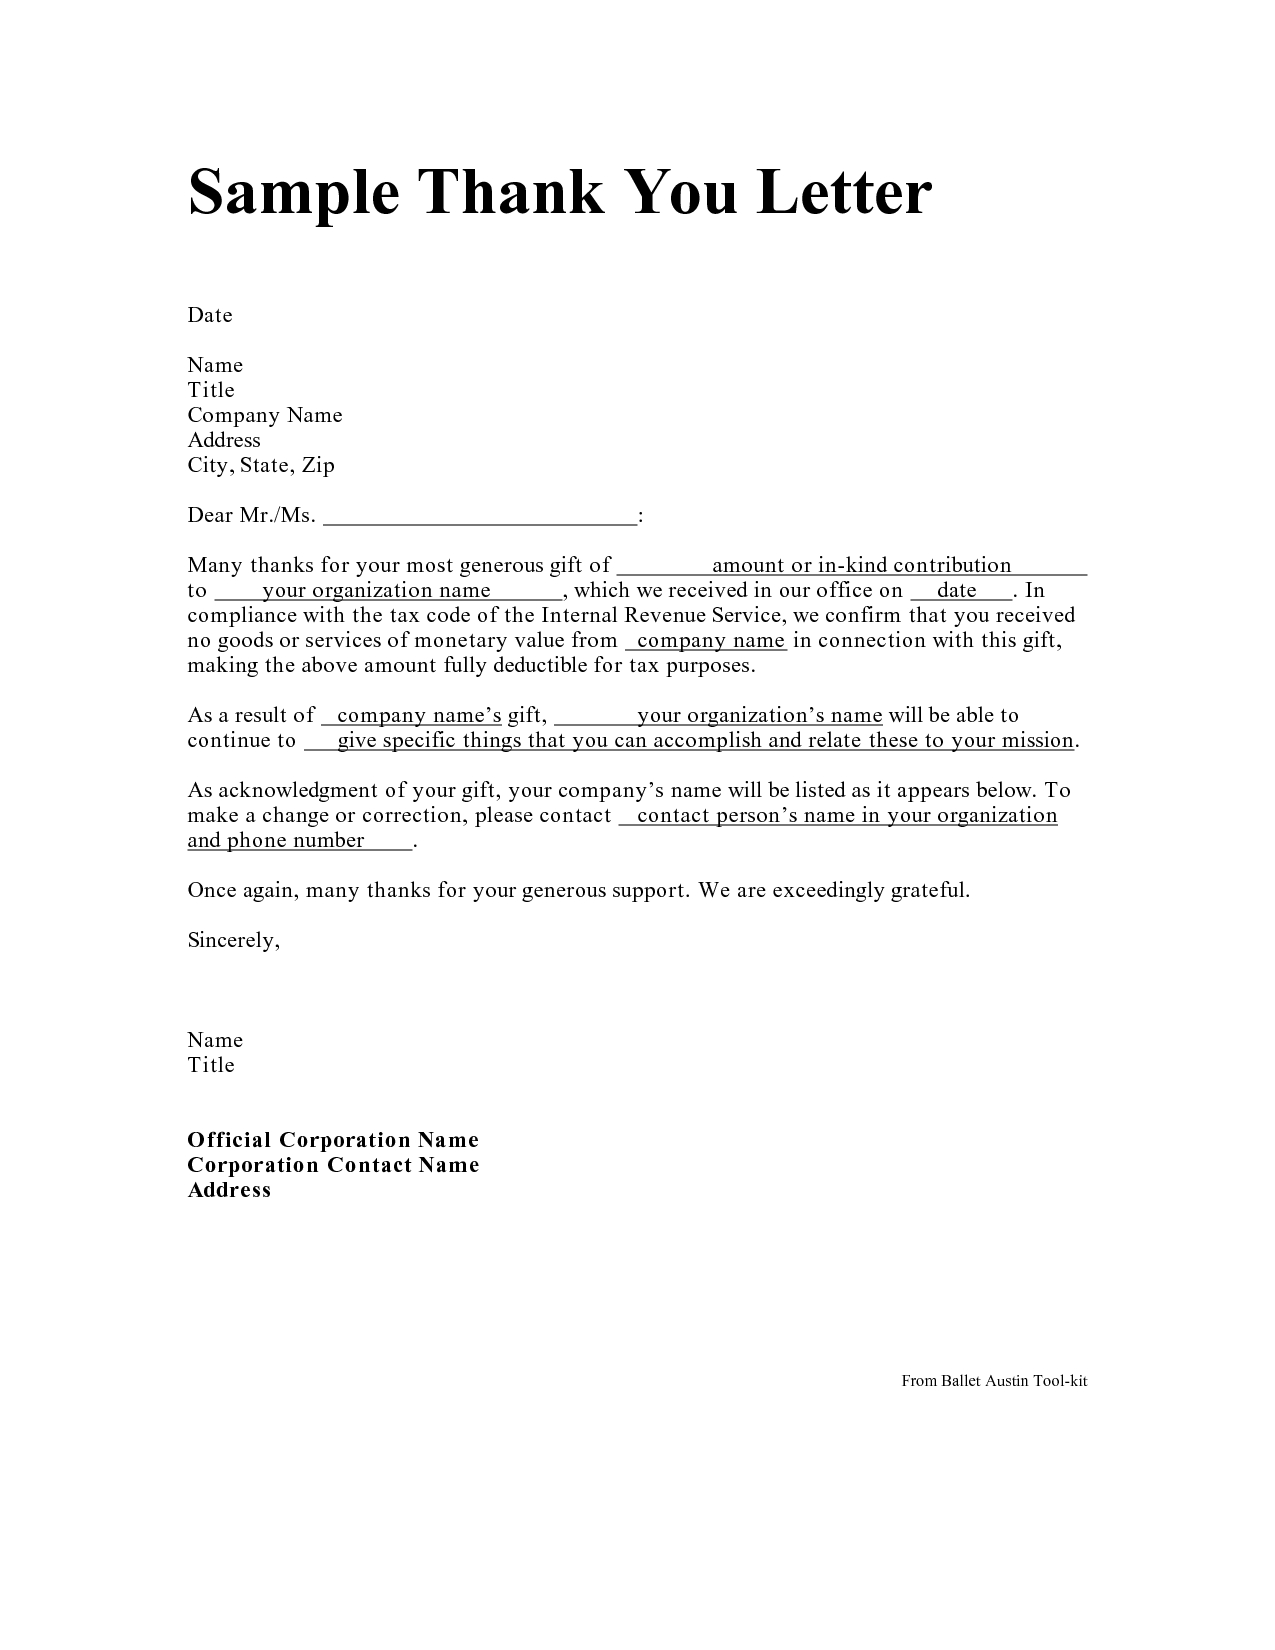 letter of support template for a person example-Personal Thank You Letter Personal Thank You Letter Samples Writing Thank You Notes Thank You Note Examples 7-h